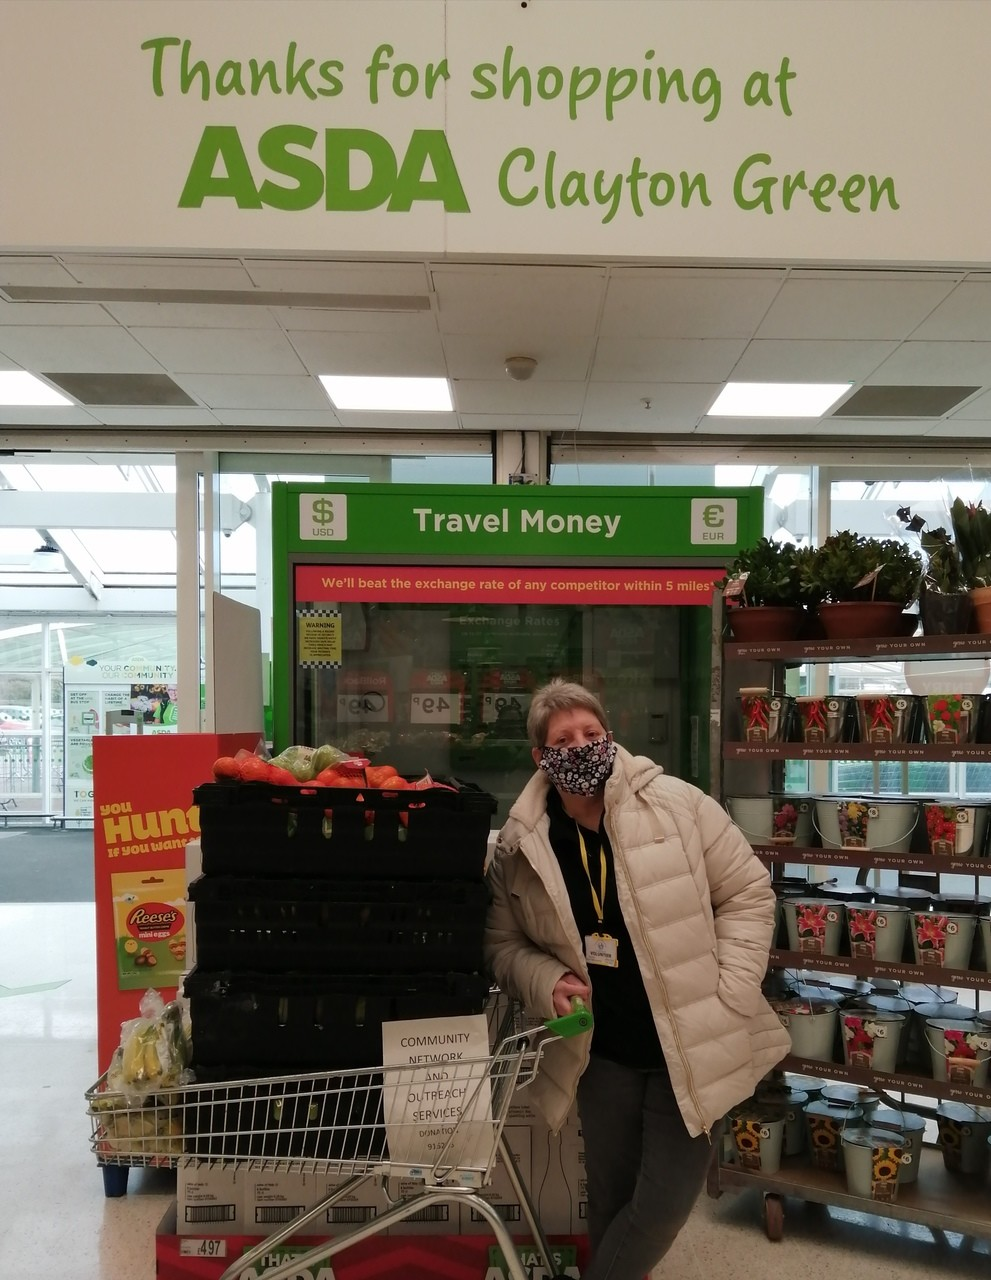 Fresh fruit for kids lunch parcels donatated to community network and outreach services Leyland,  | Asda Clayton Green